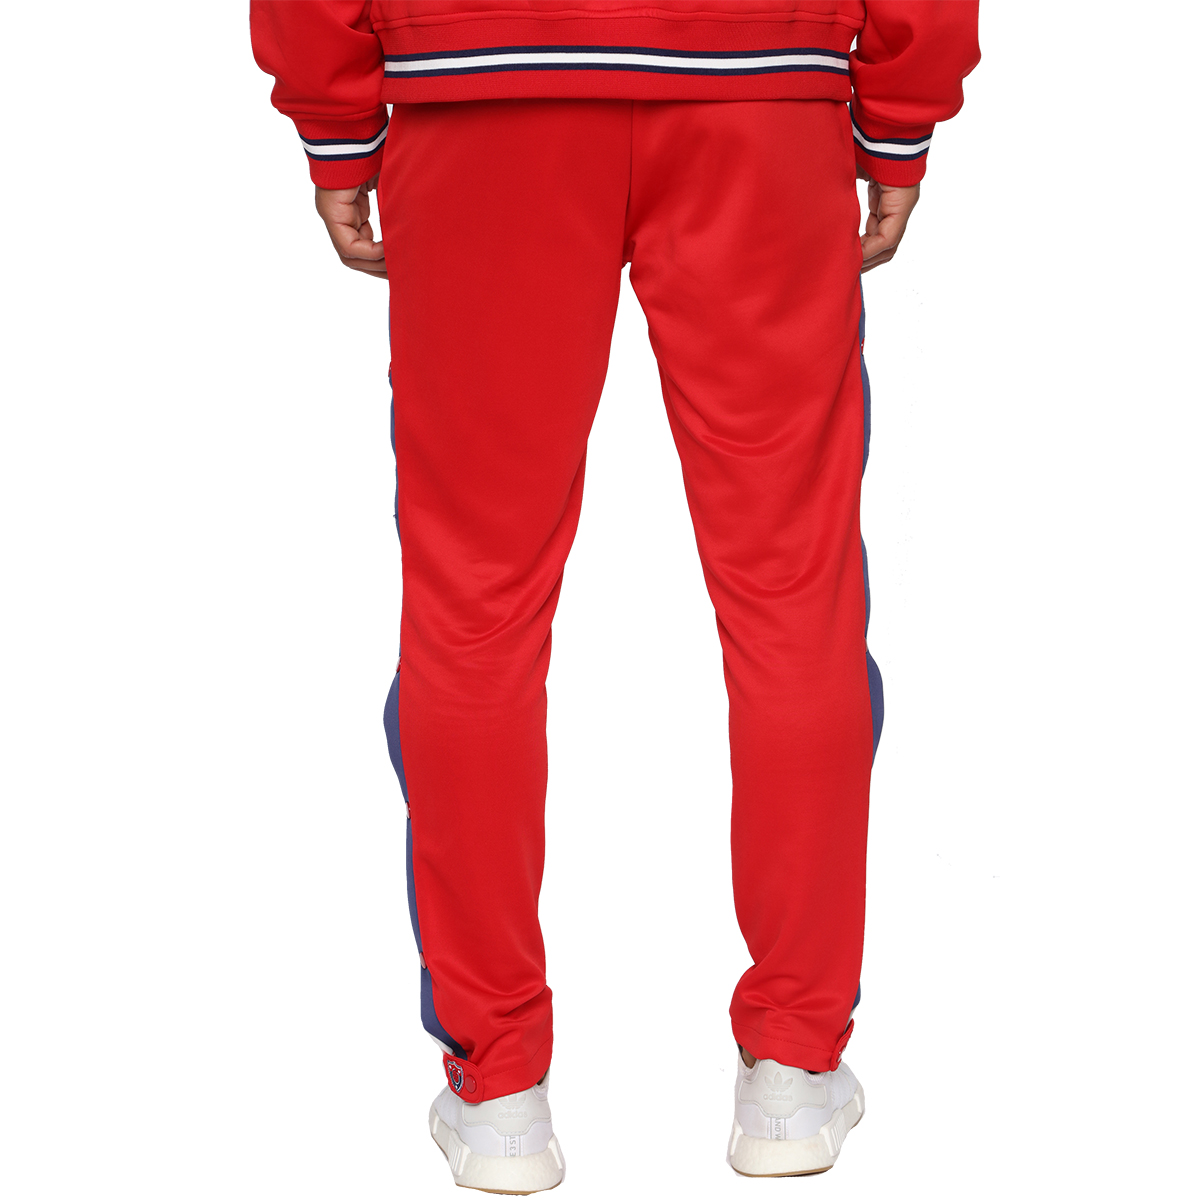 Team Tri State Joggers - Red